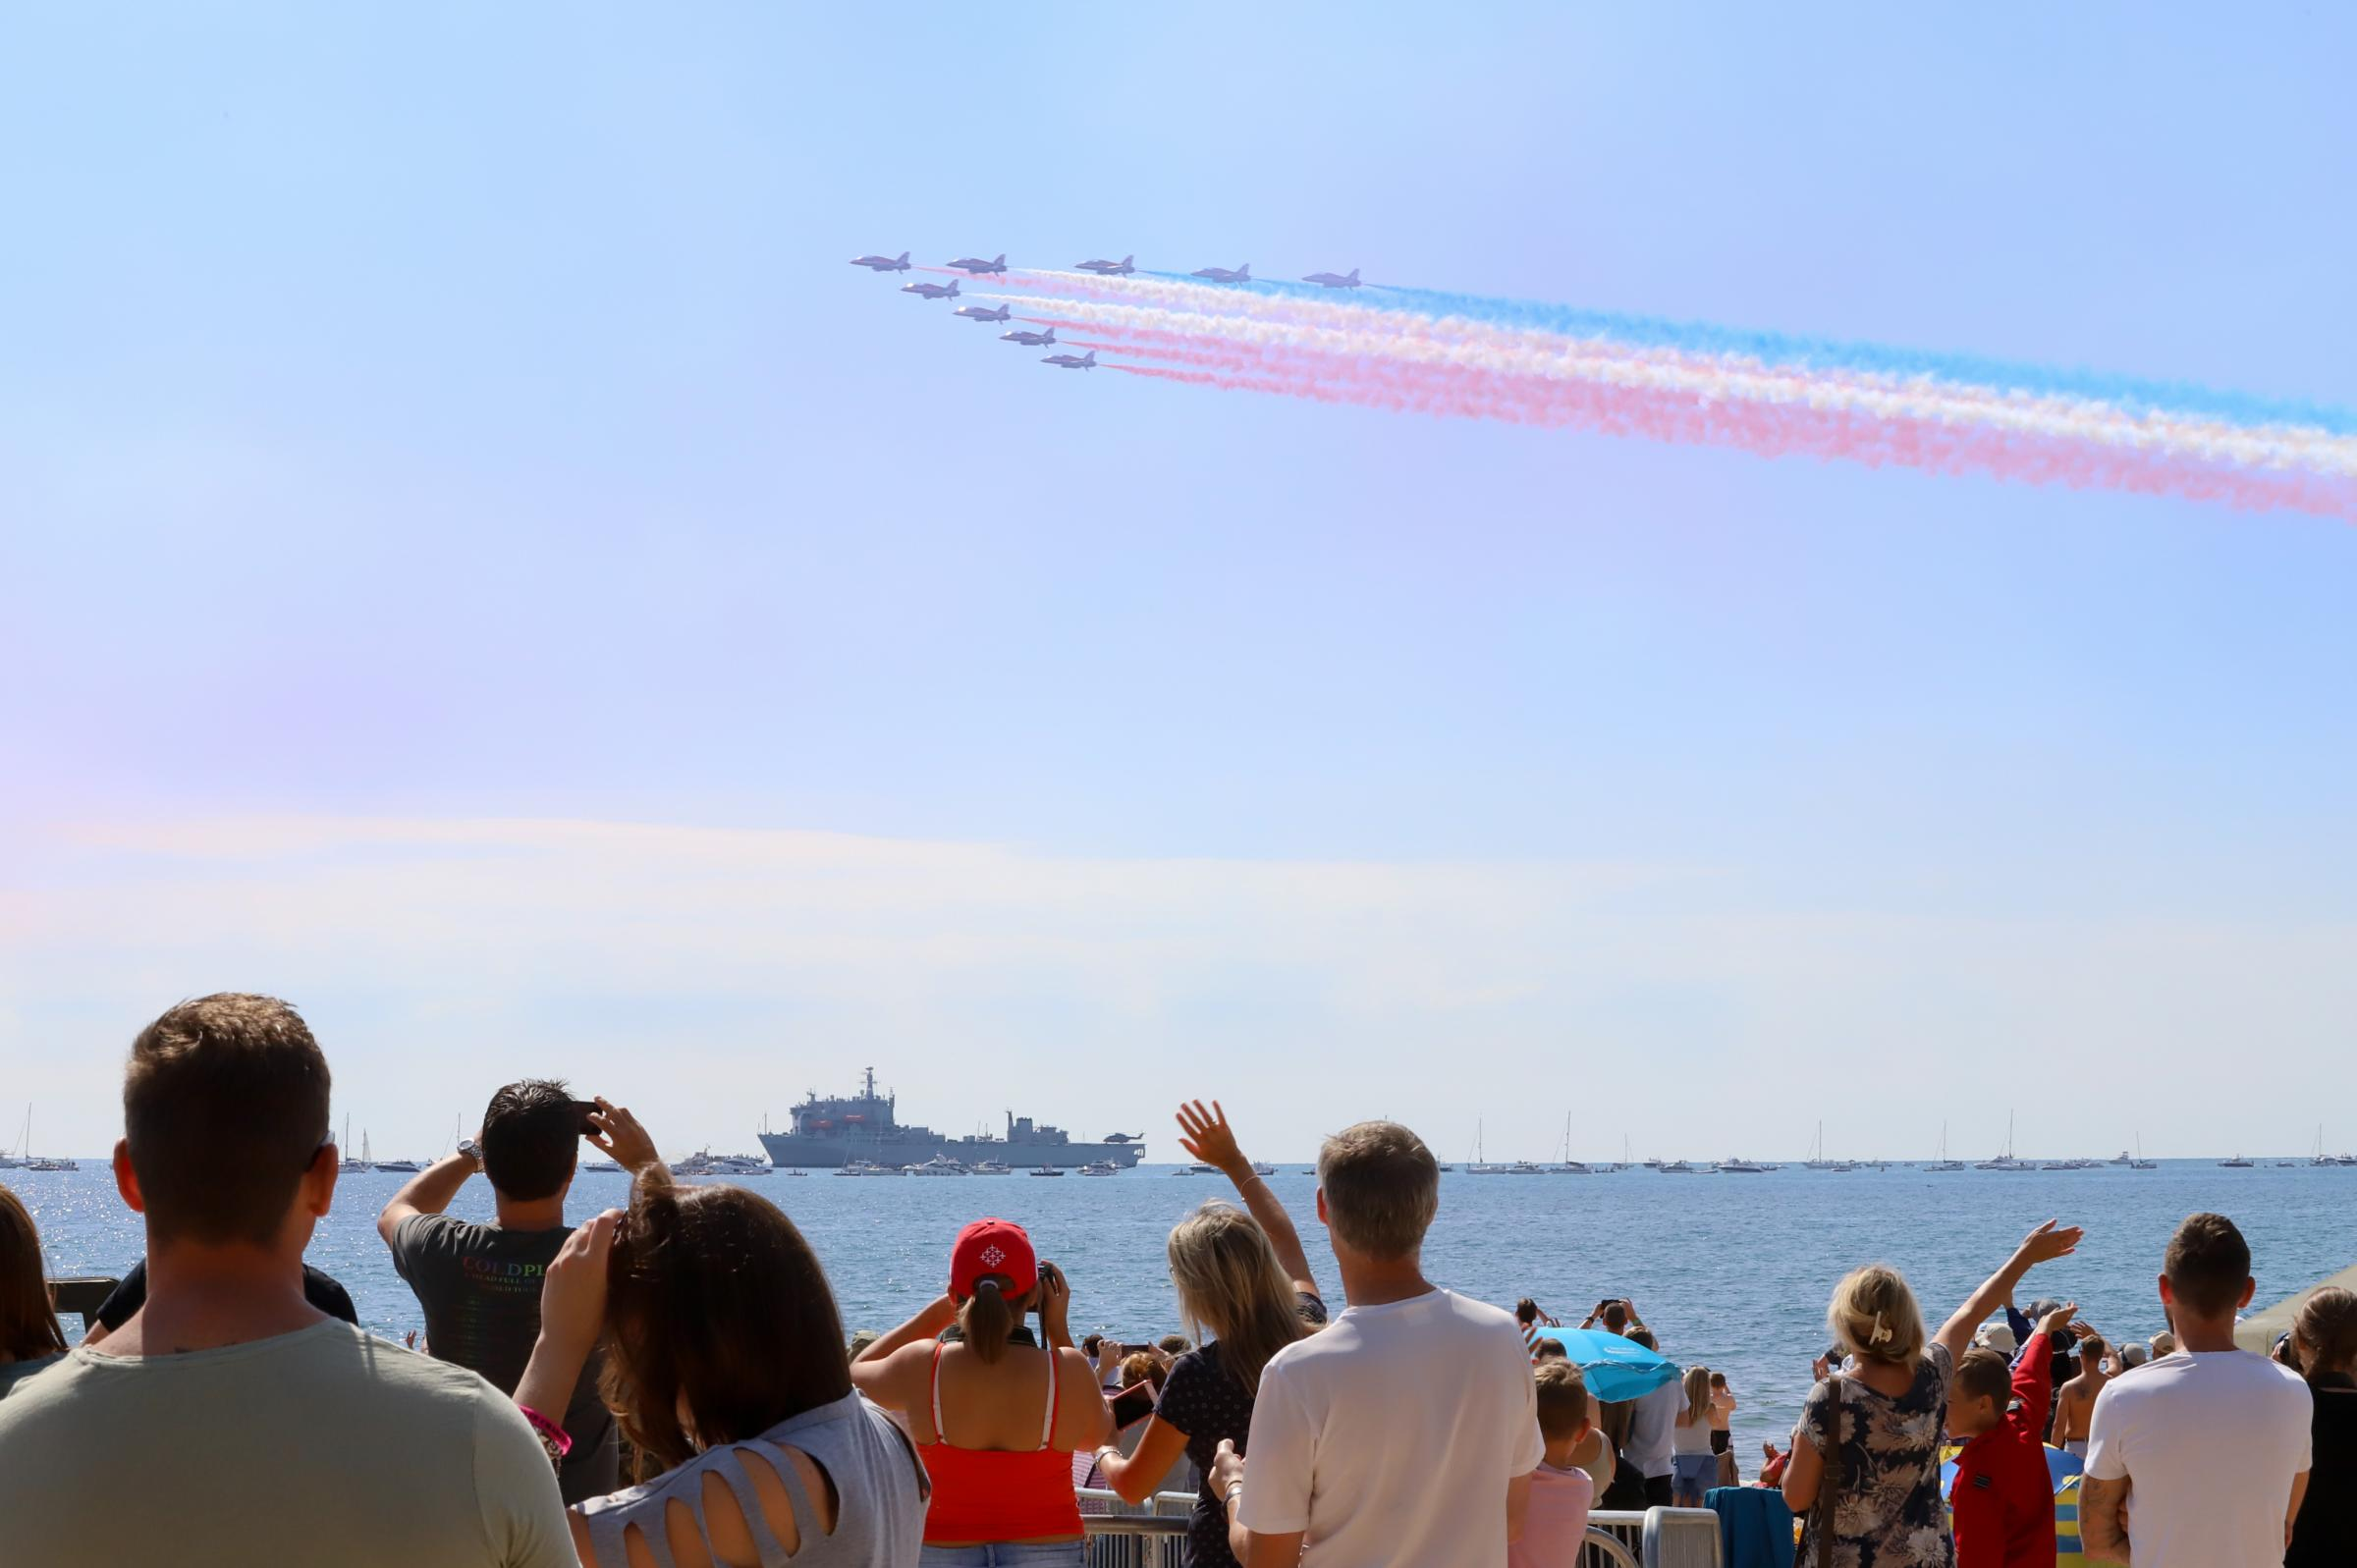 The Red Arrows performing at the Bournemouth Air Festival 2017.